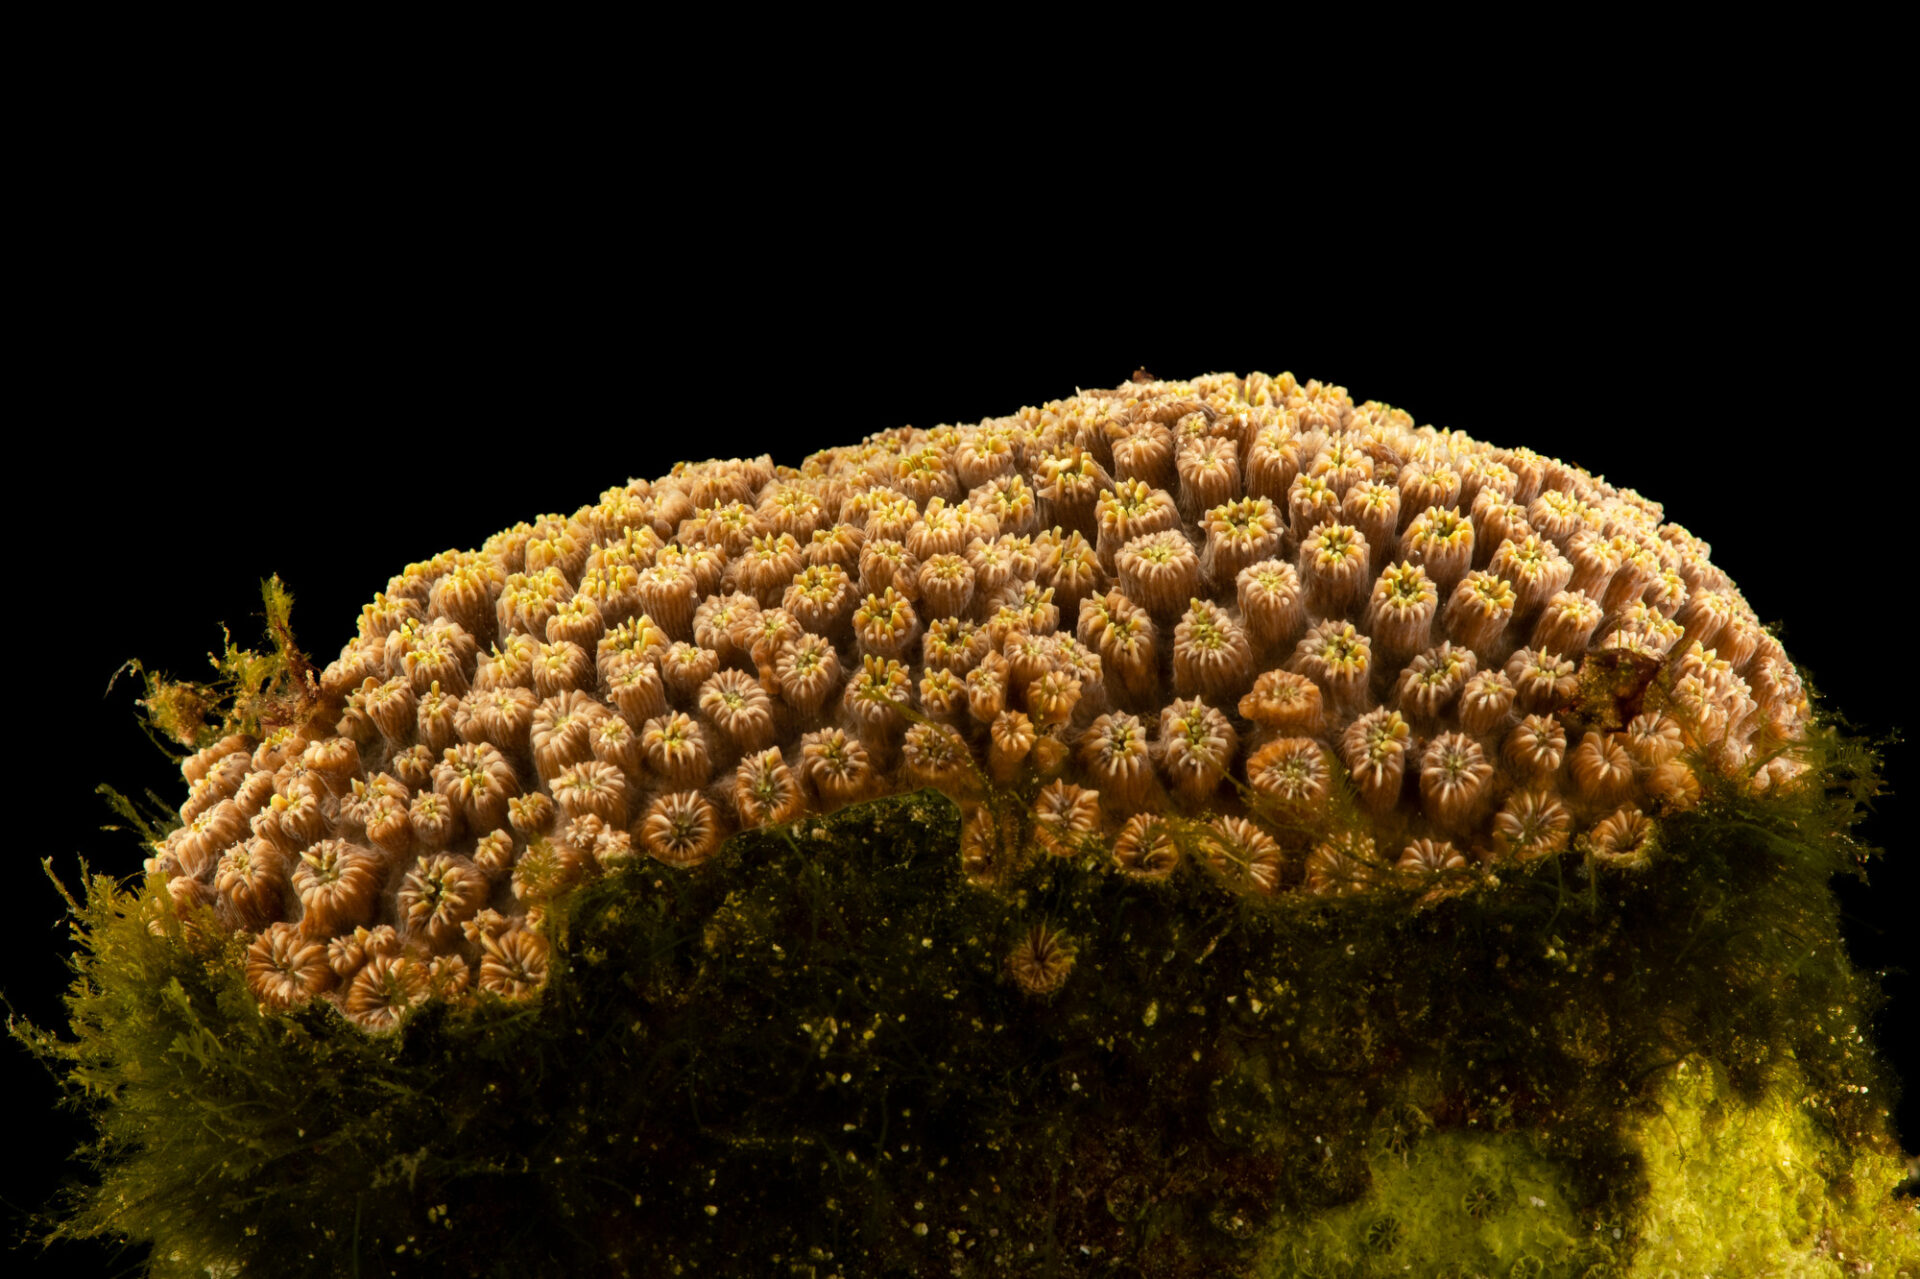 Photo: An unidentified tooth coral (Galaxea sp.) at the Akron Zoo.